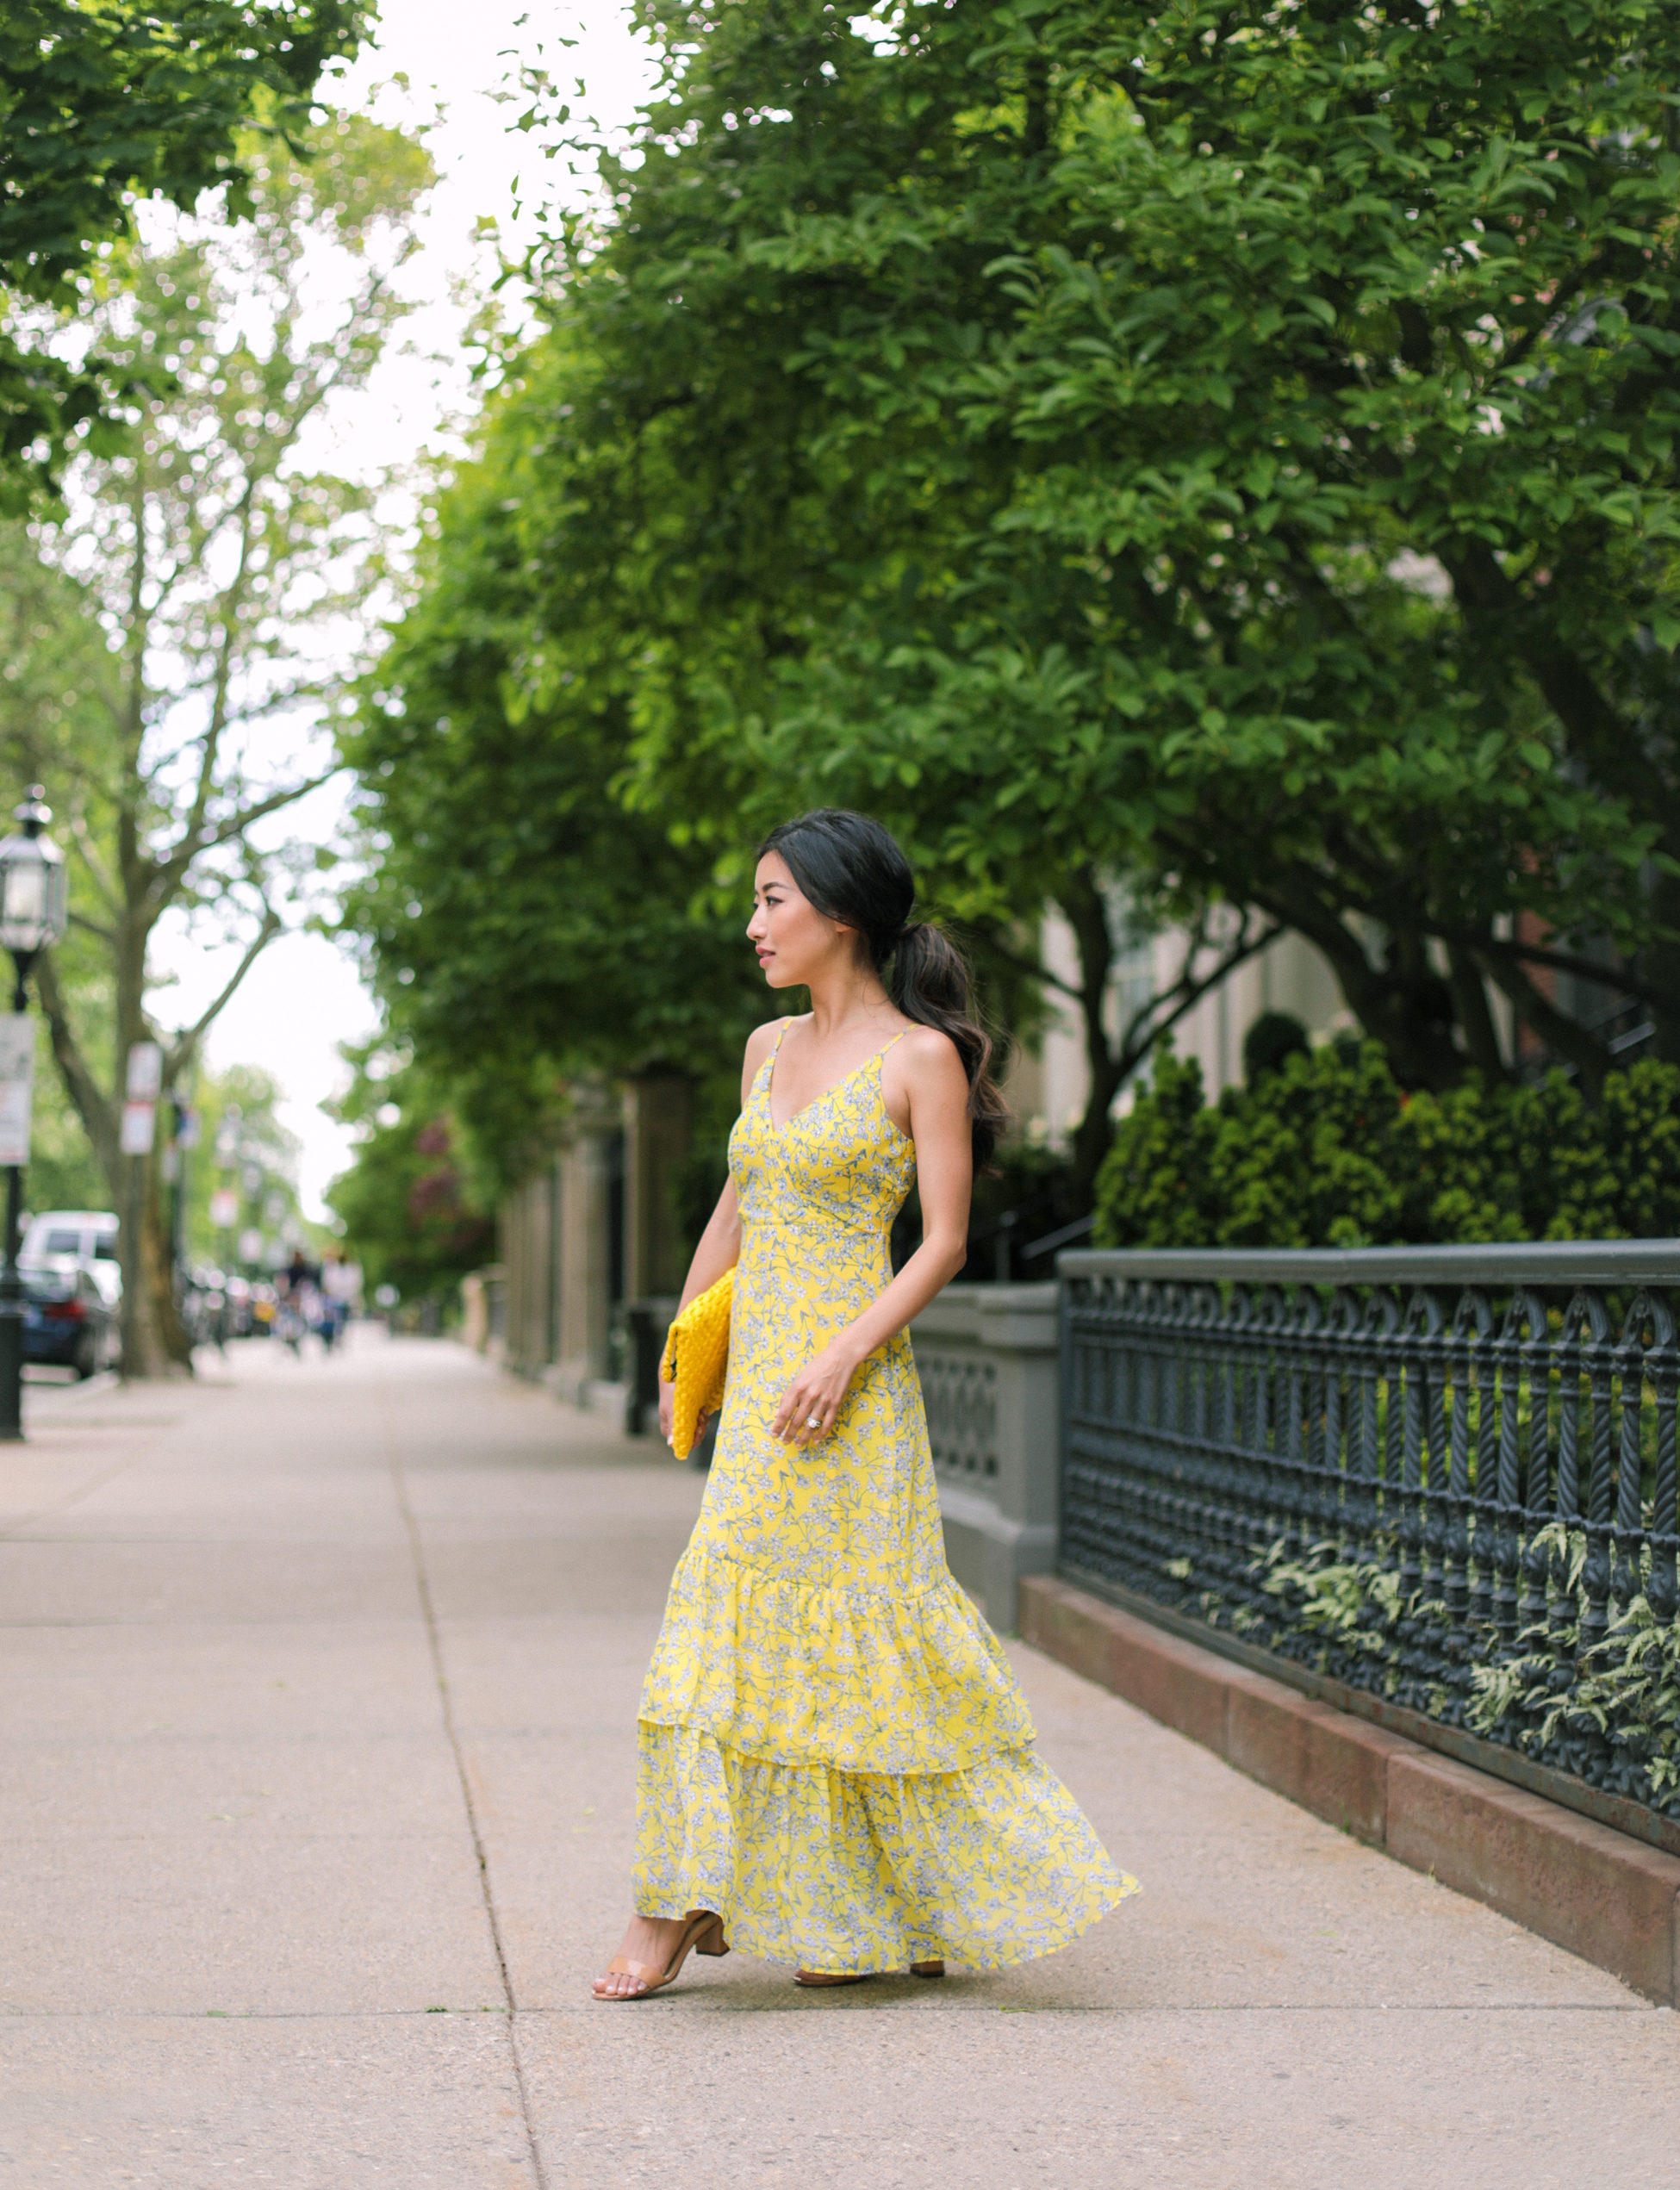 Sunny florals // tiered maxi dress + yellow clutch